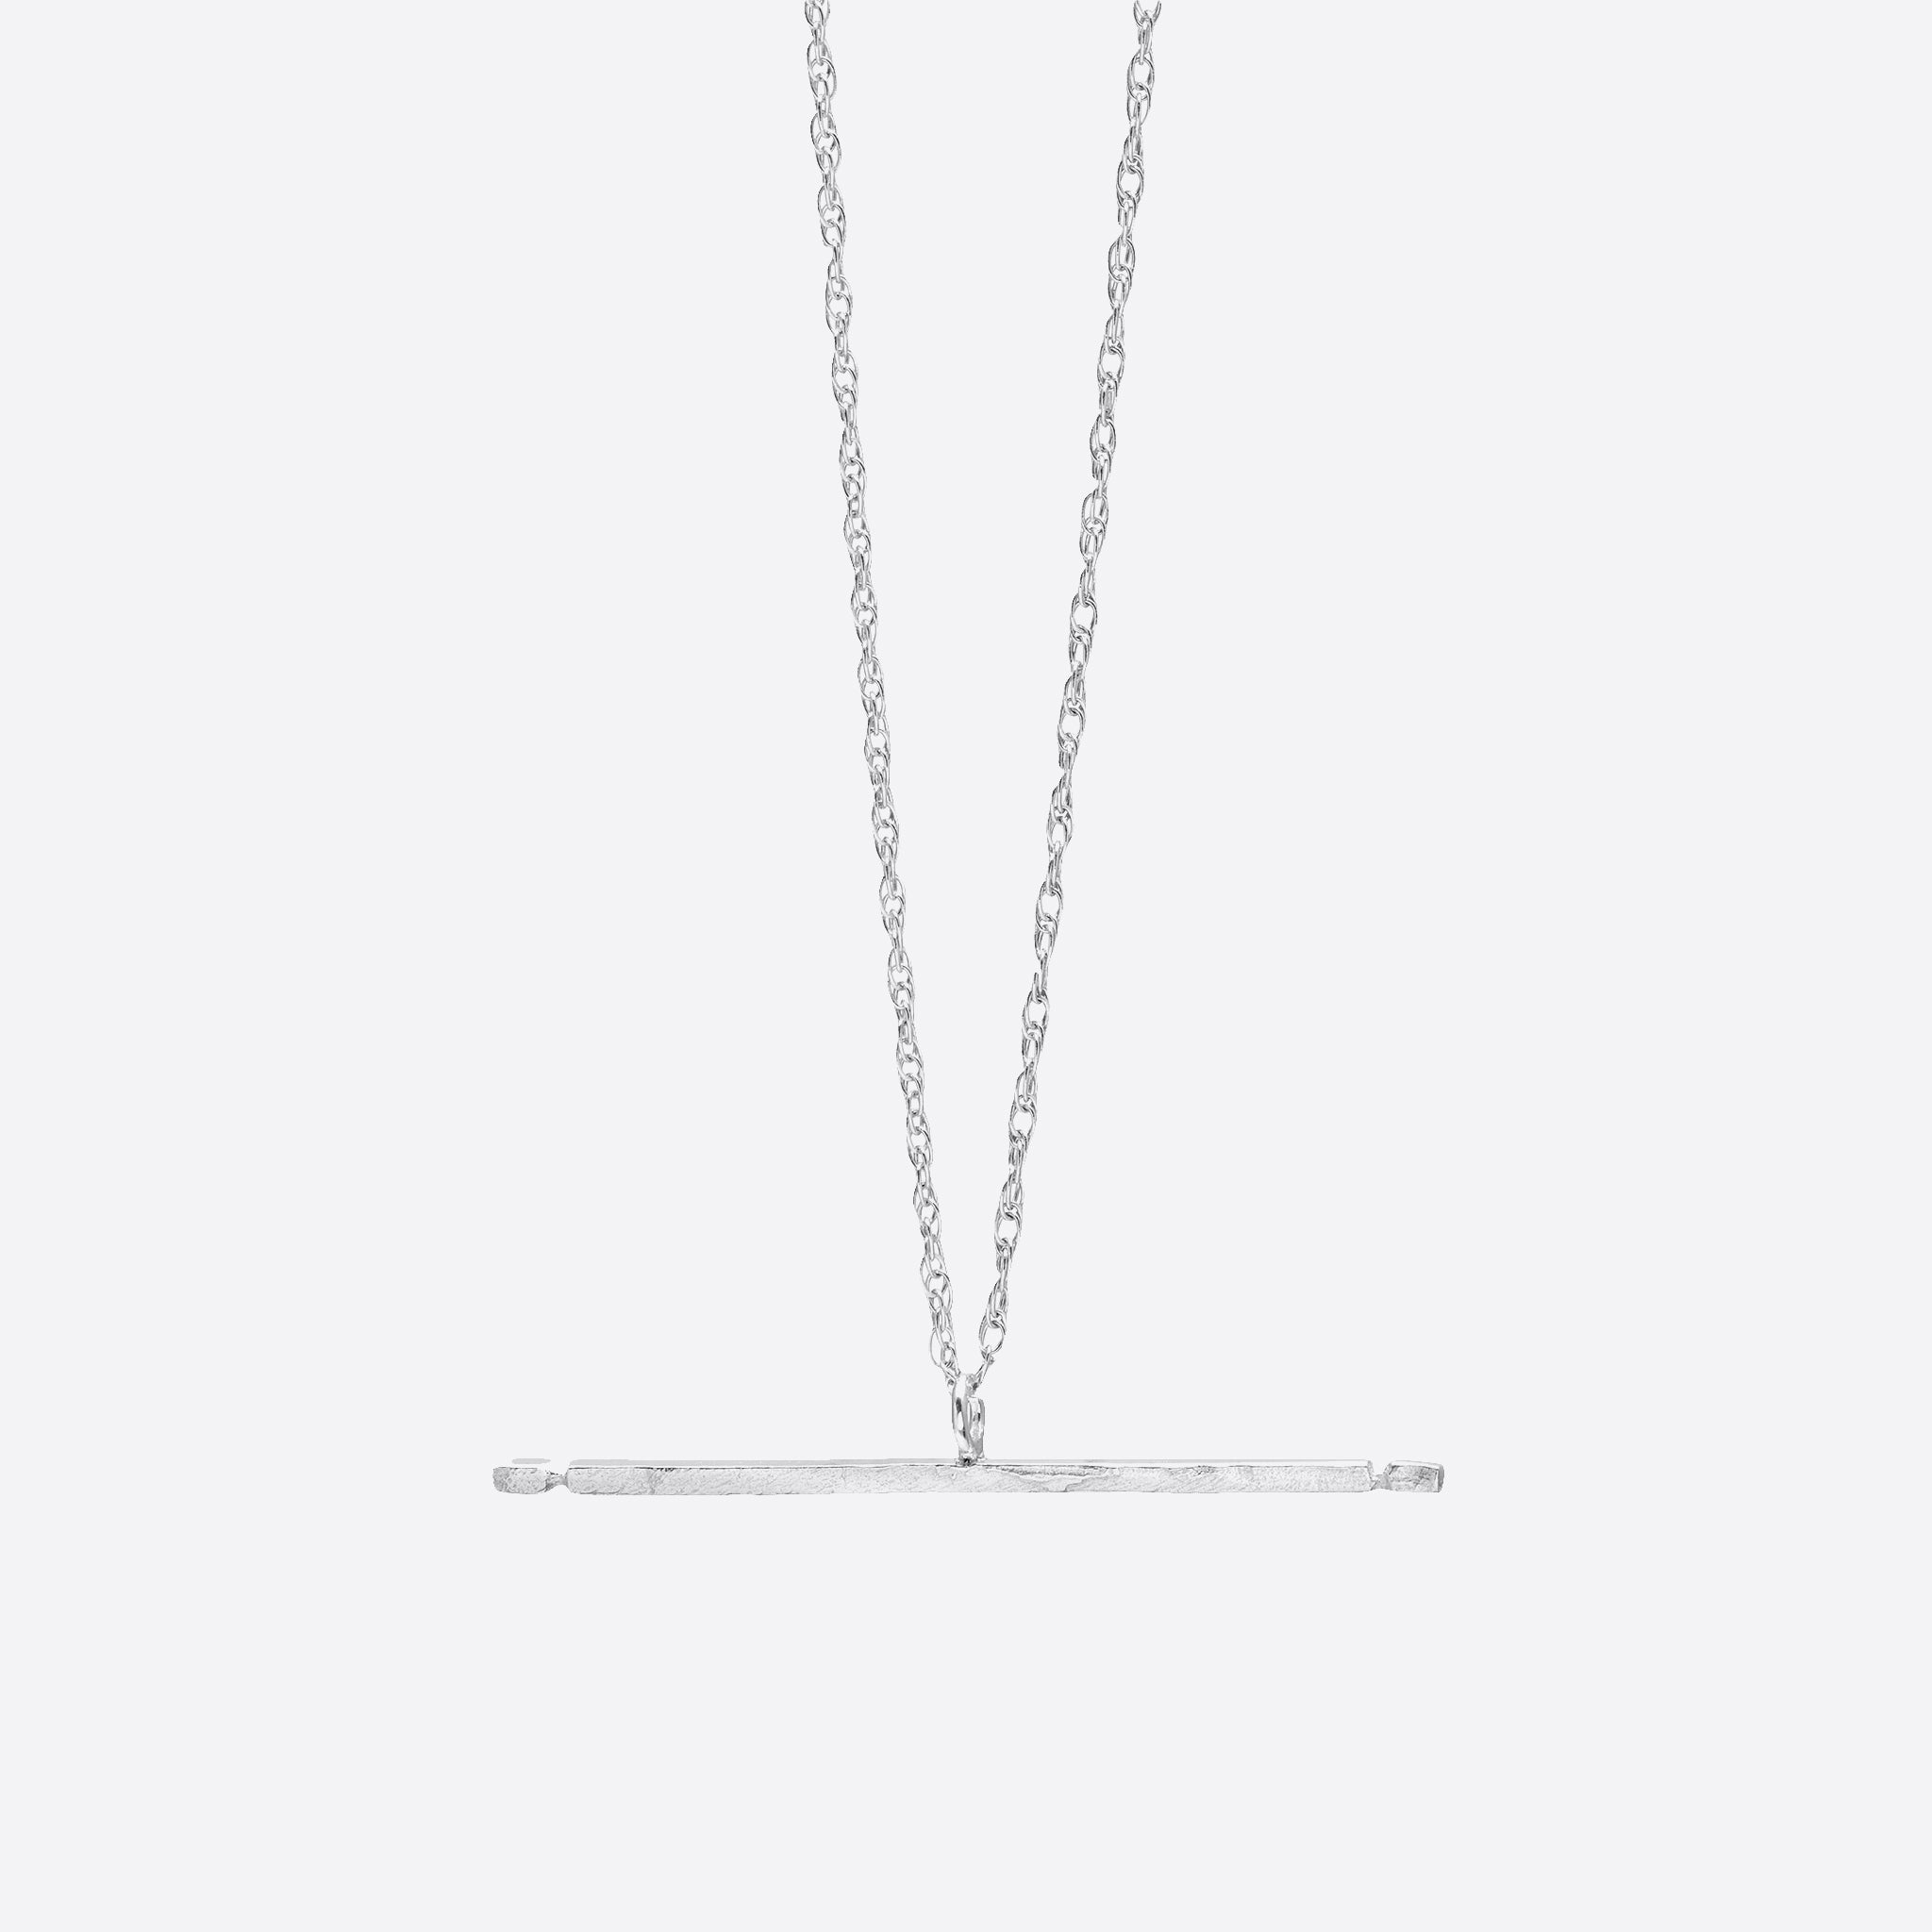 Nagle and Sisters Allumette Necklace in Silver